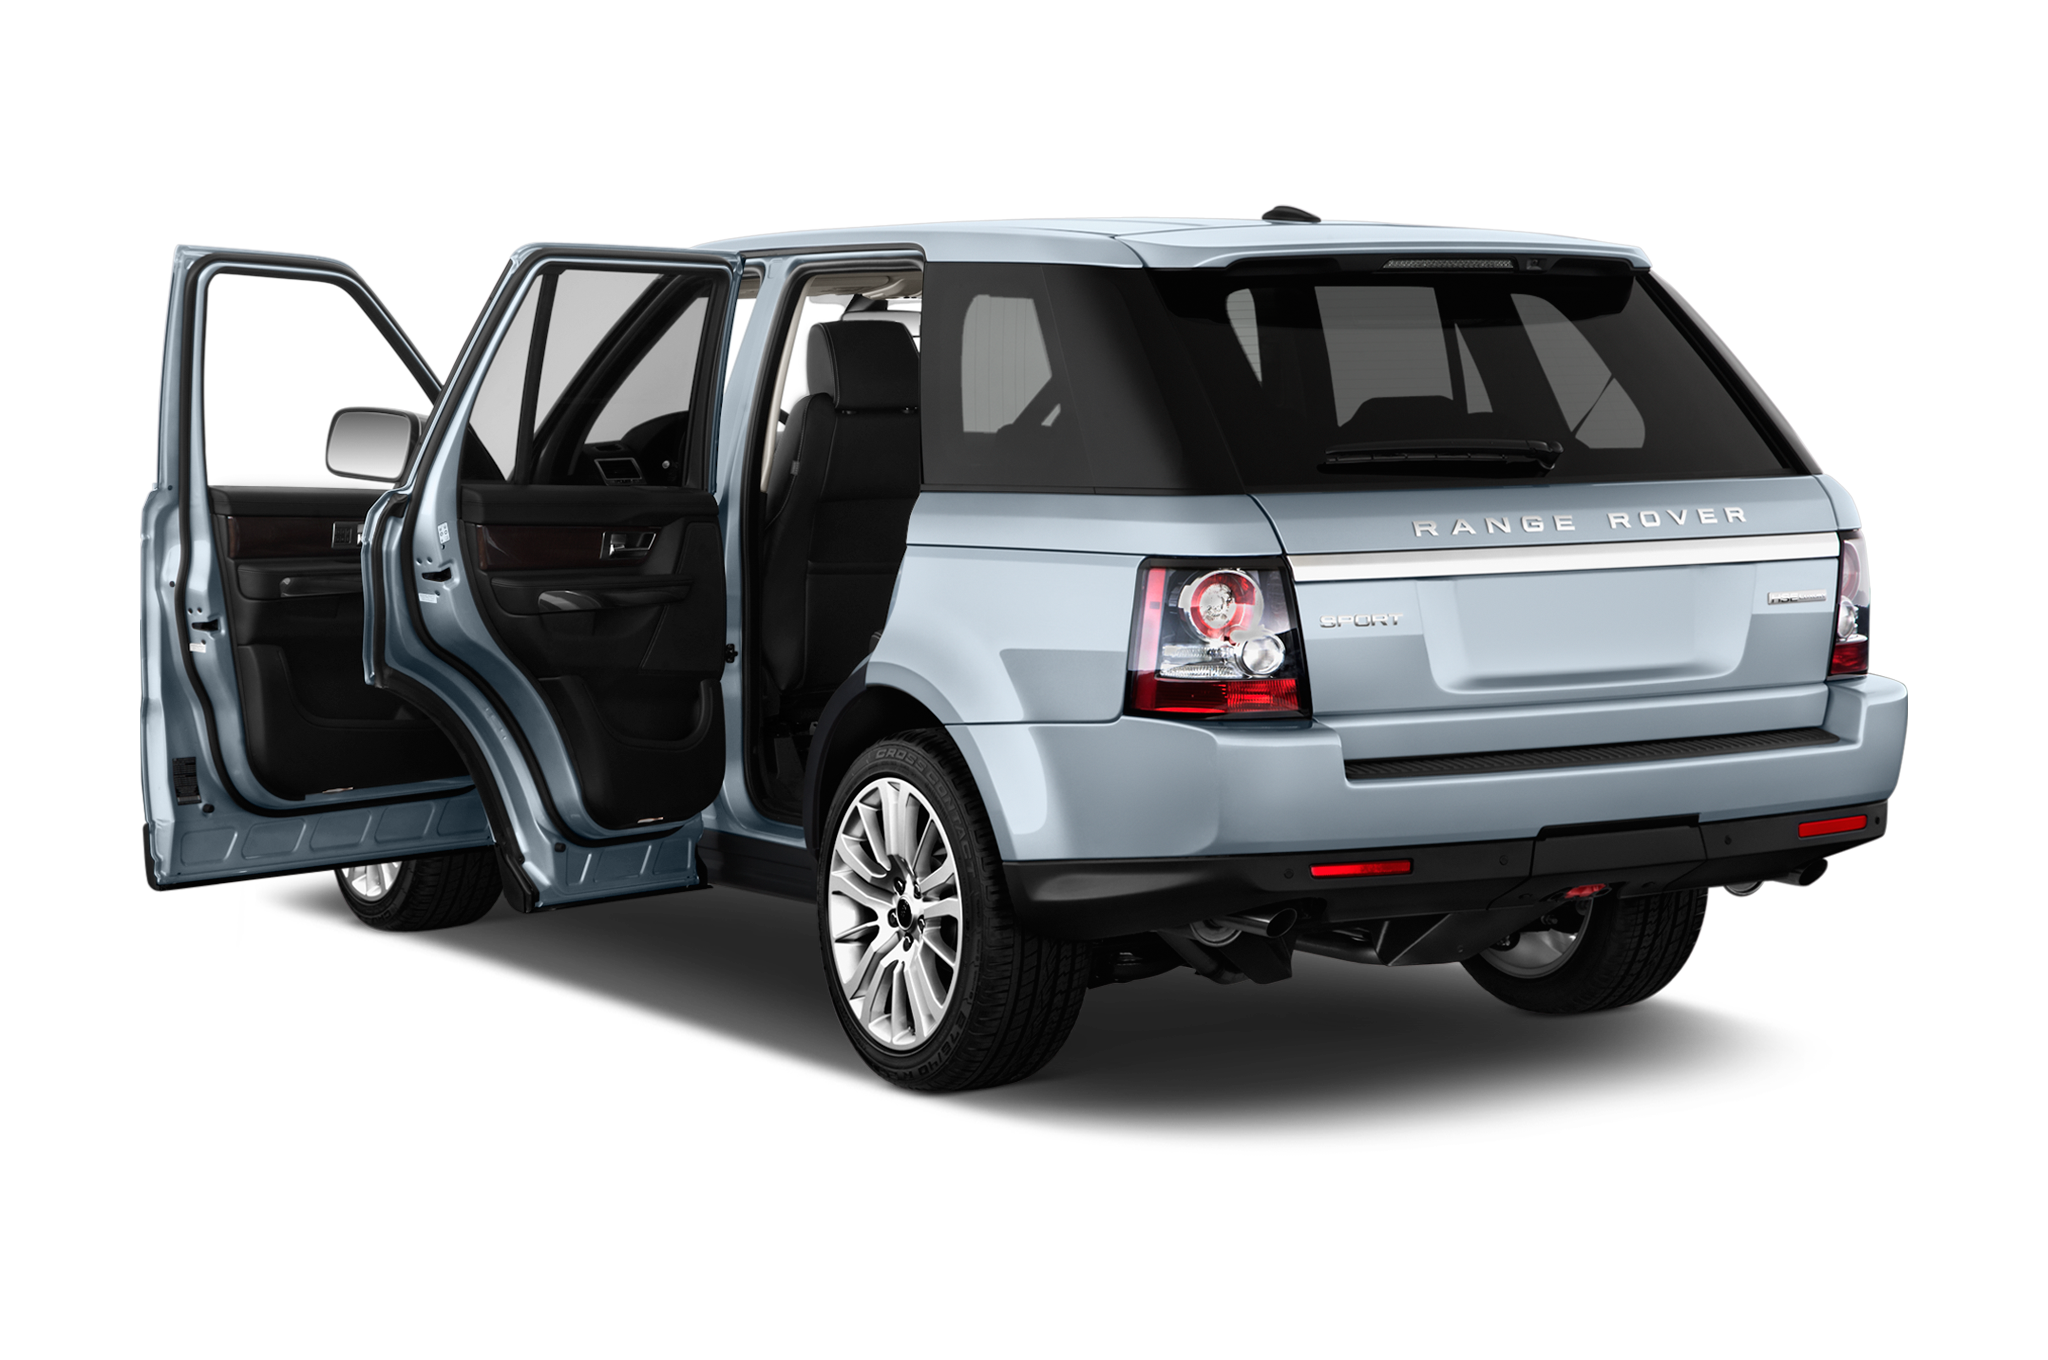 2012 range rover sport hse editors 39 notebook. Black Bedroom Furniture Sets. Home Design Ideas